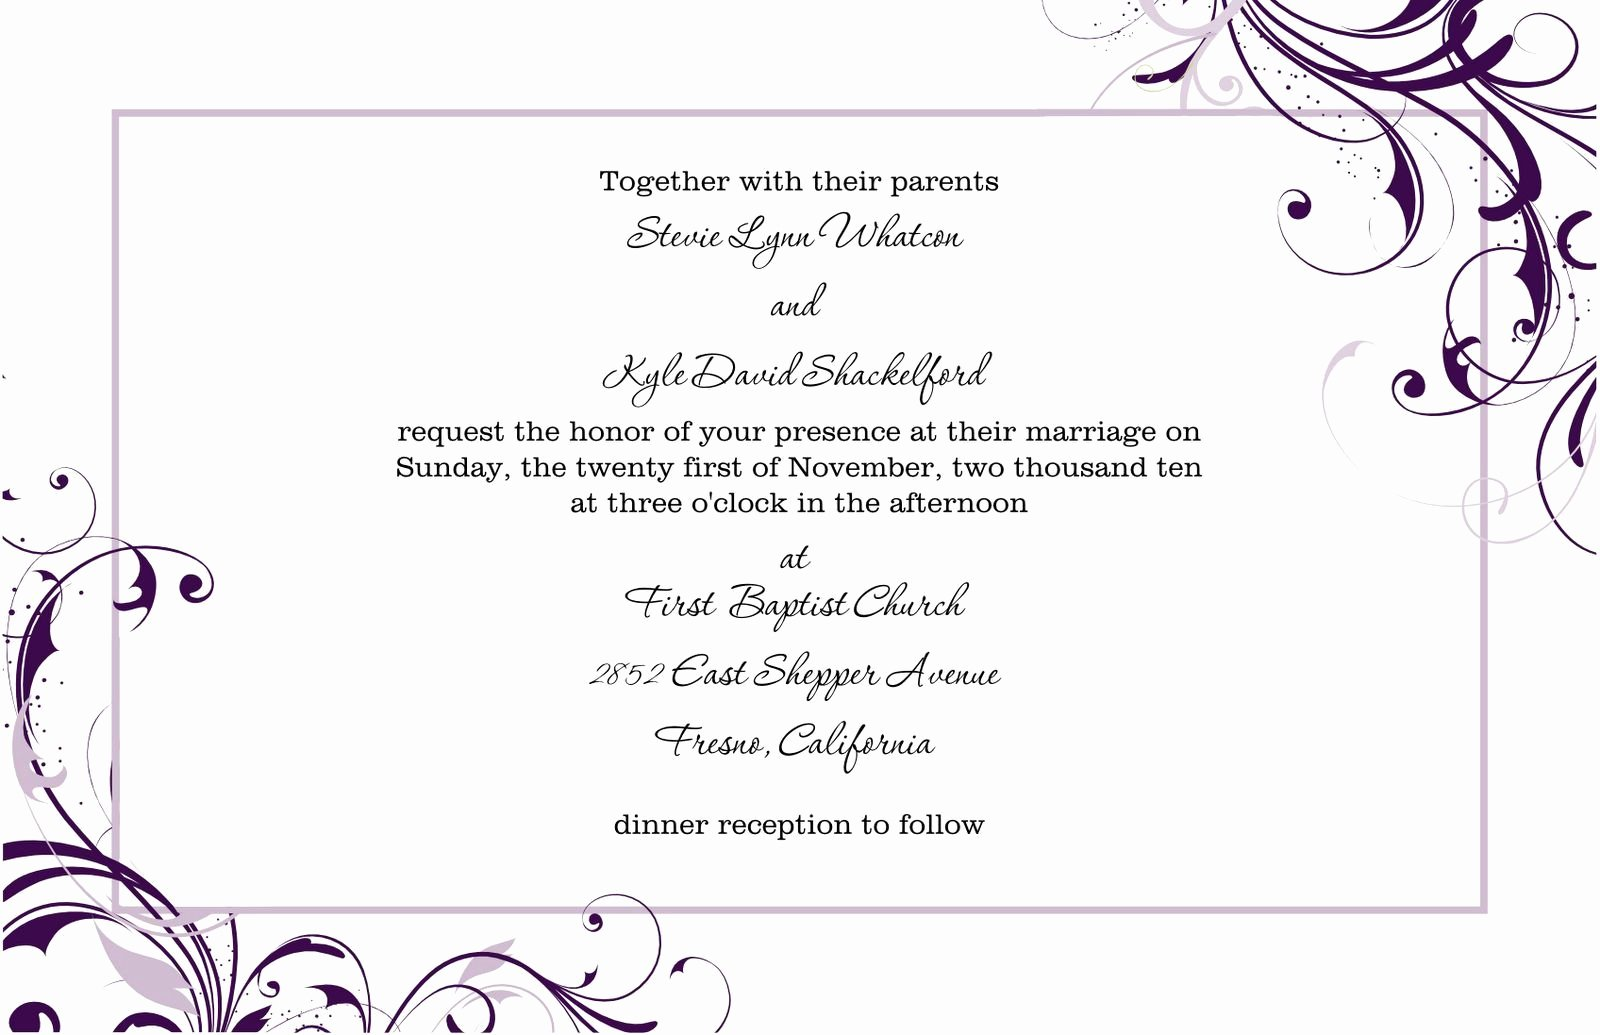 Media Announcement Template Inspirational Free Blank Wedding Invitation Templates for Microsoft Word